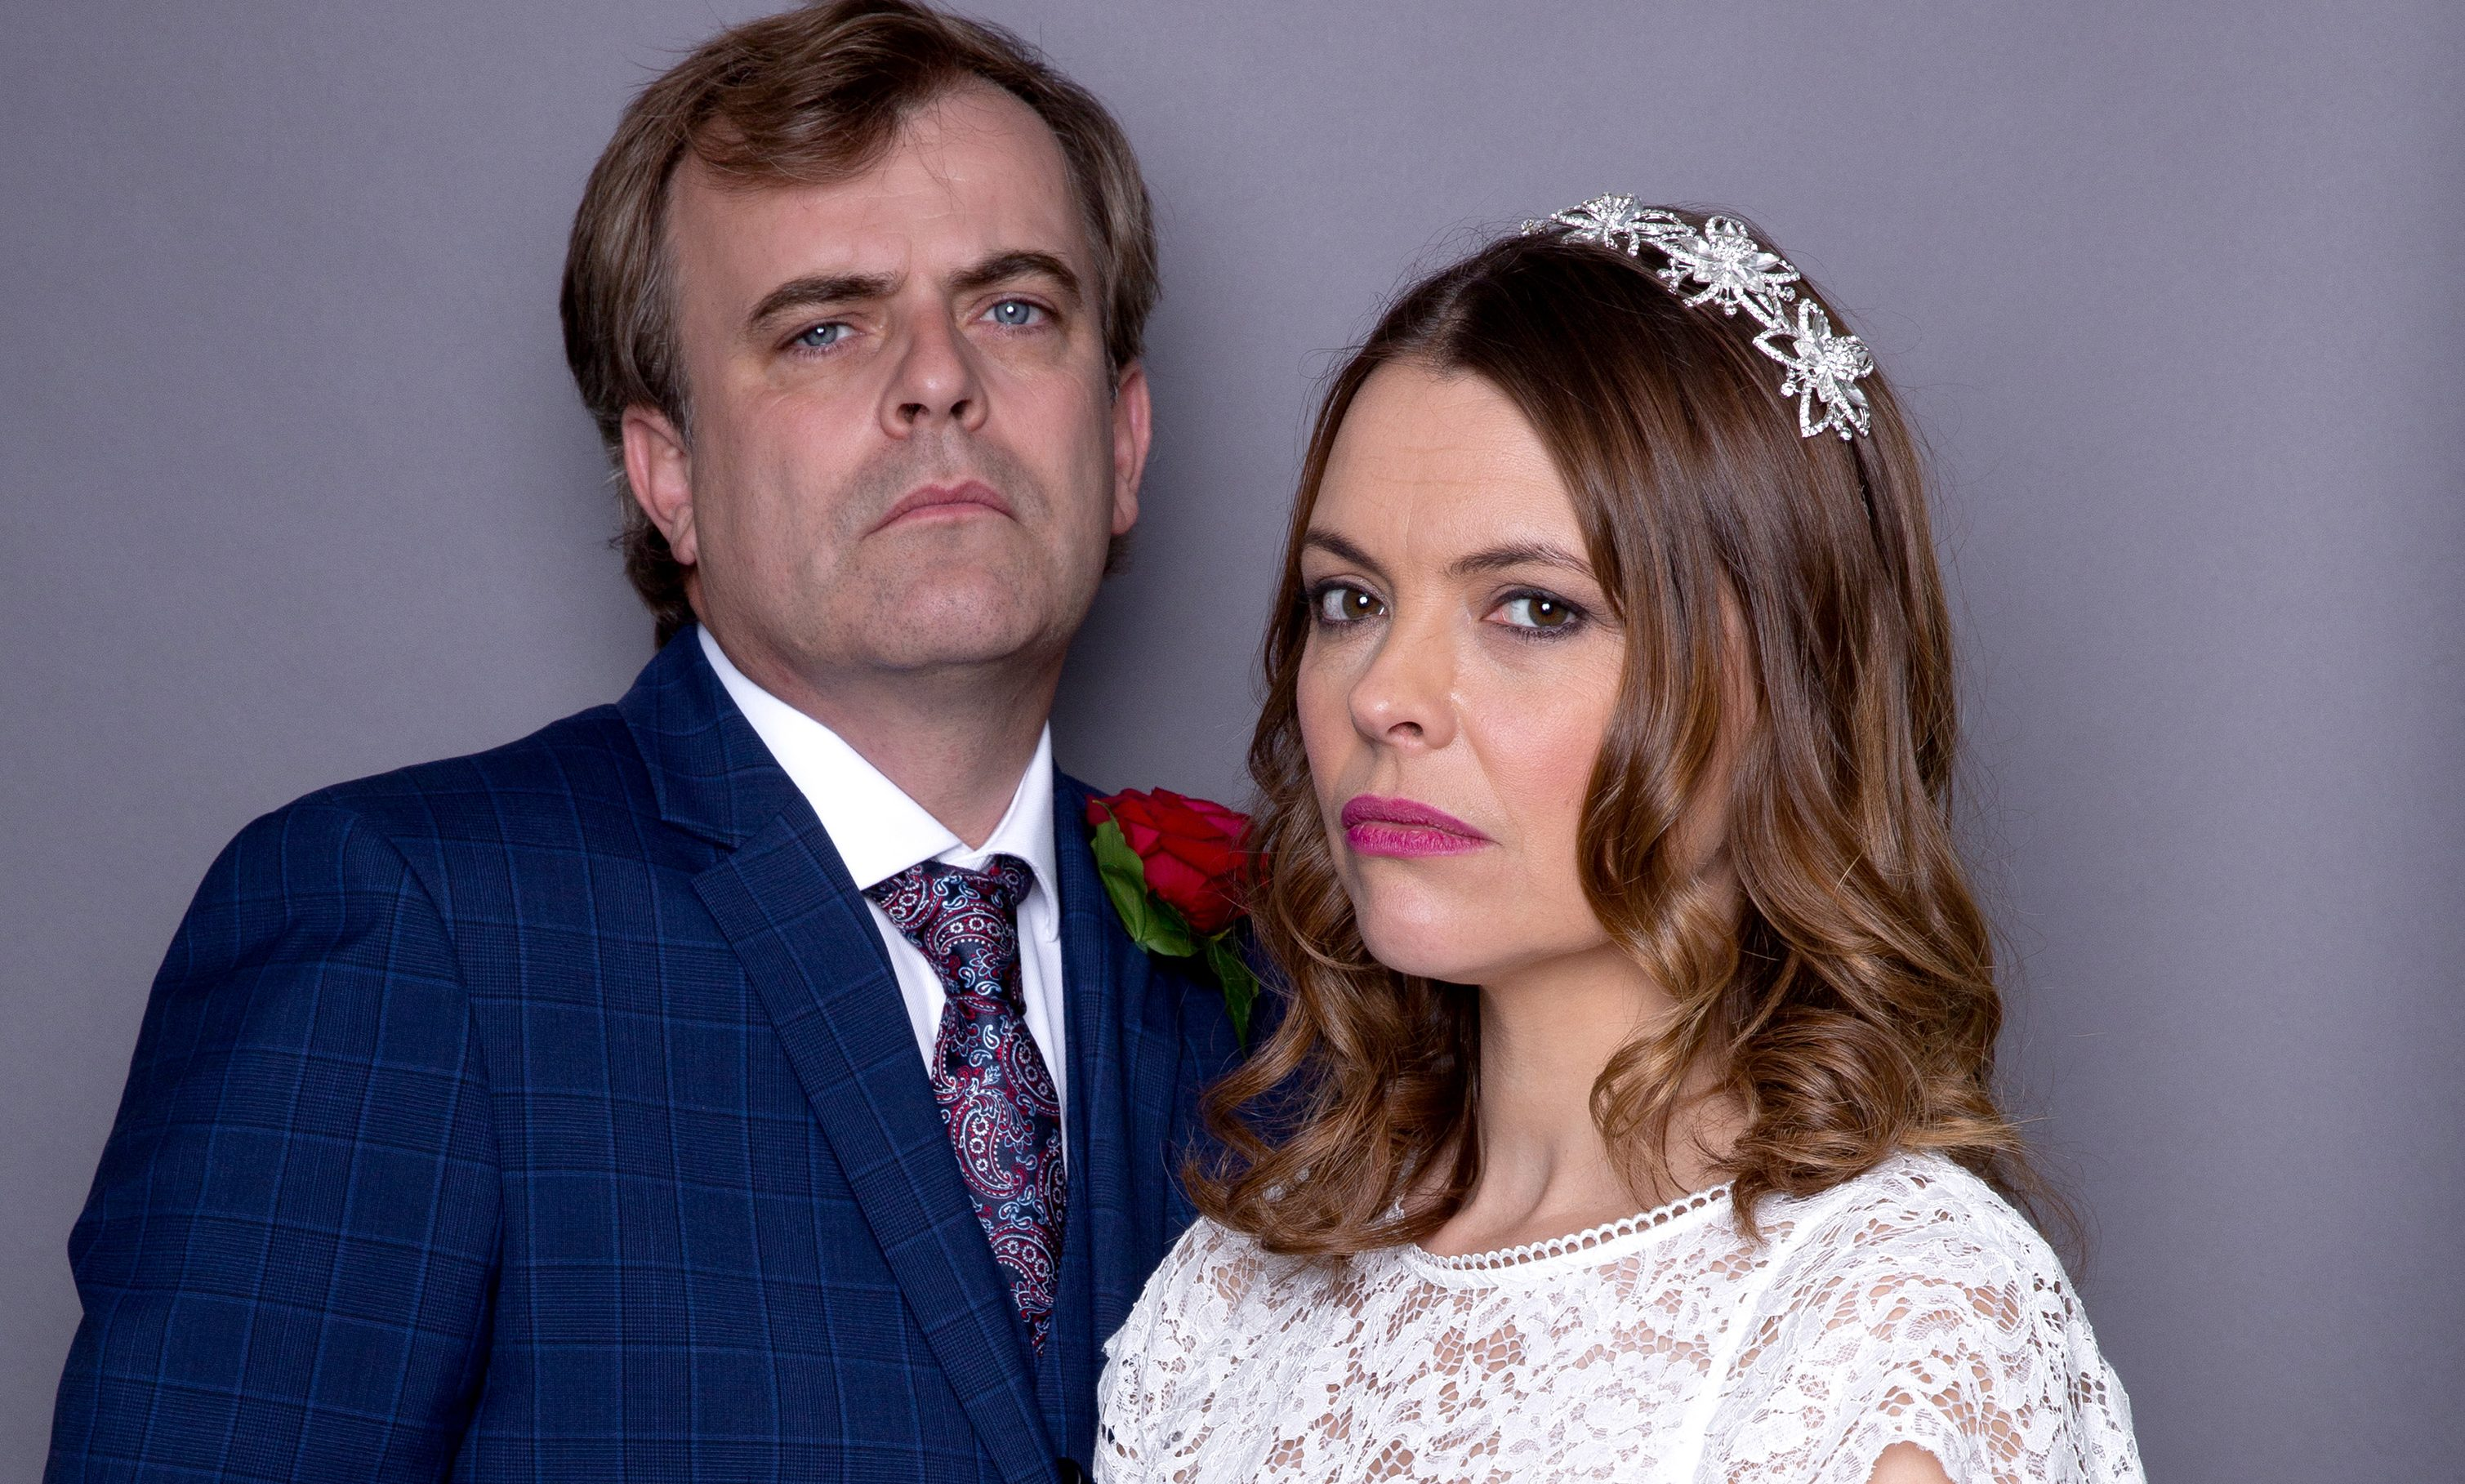 Coronation Street spoilers: Tracy Barlow takes revenge against Steve McDonald on her wedding day tonight